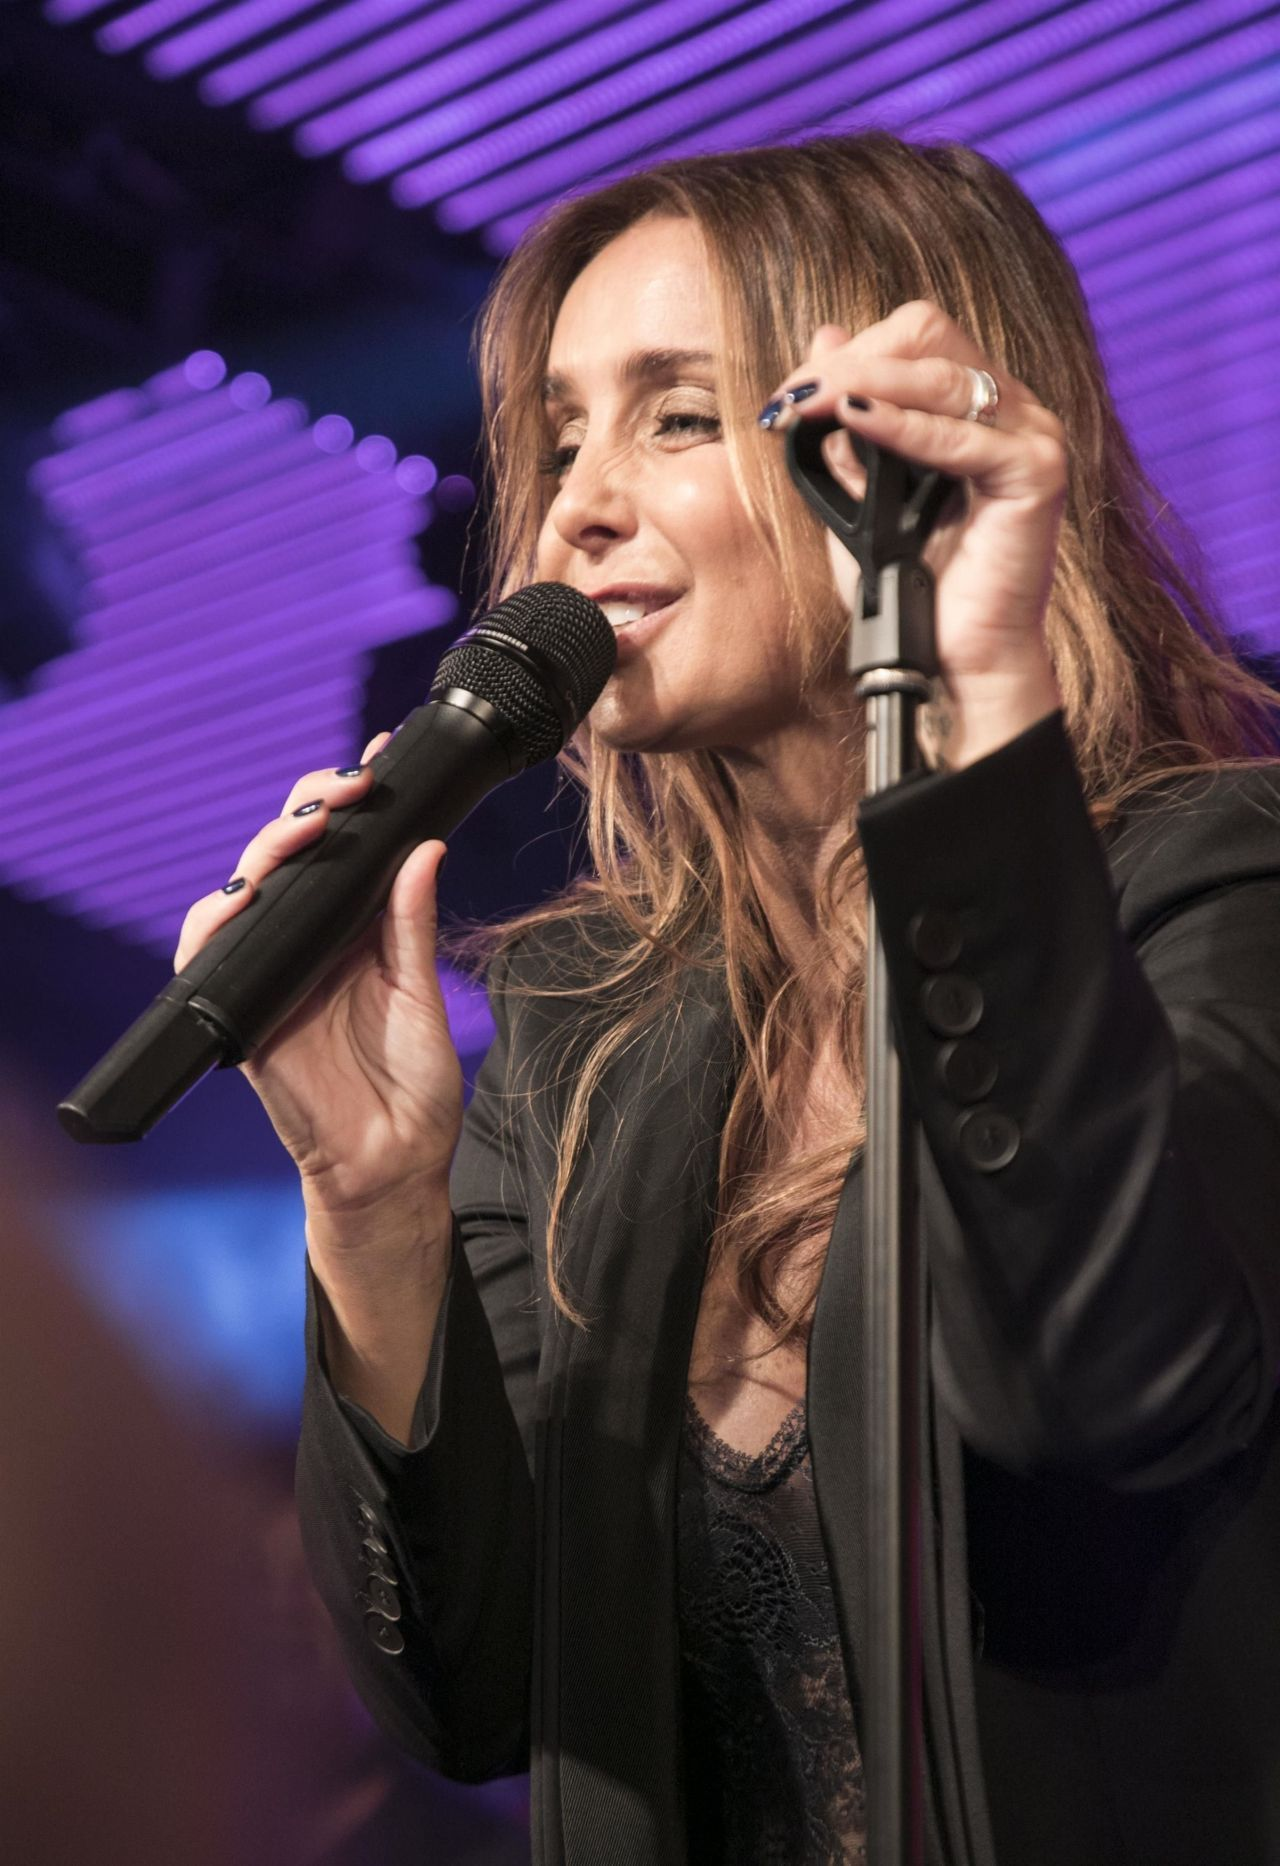 Hollywood Stars Louise Redkn Photos Performing Her First Live Show At Chelsea Football Club